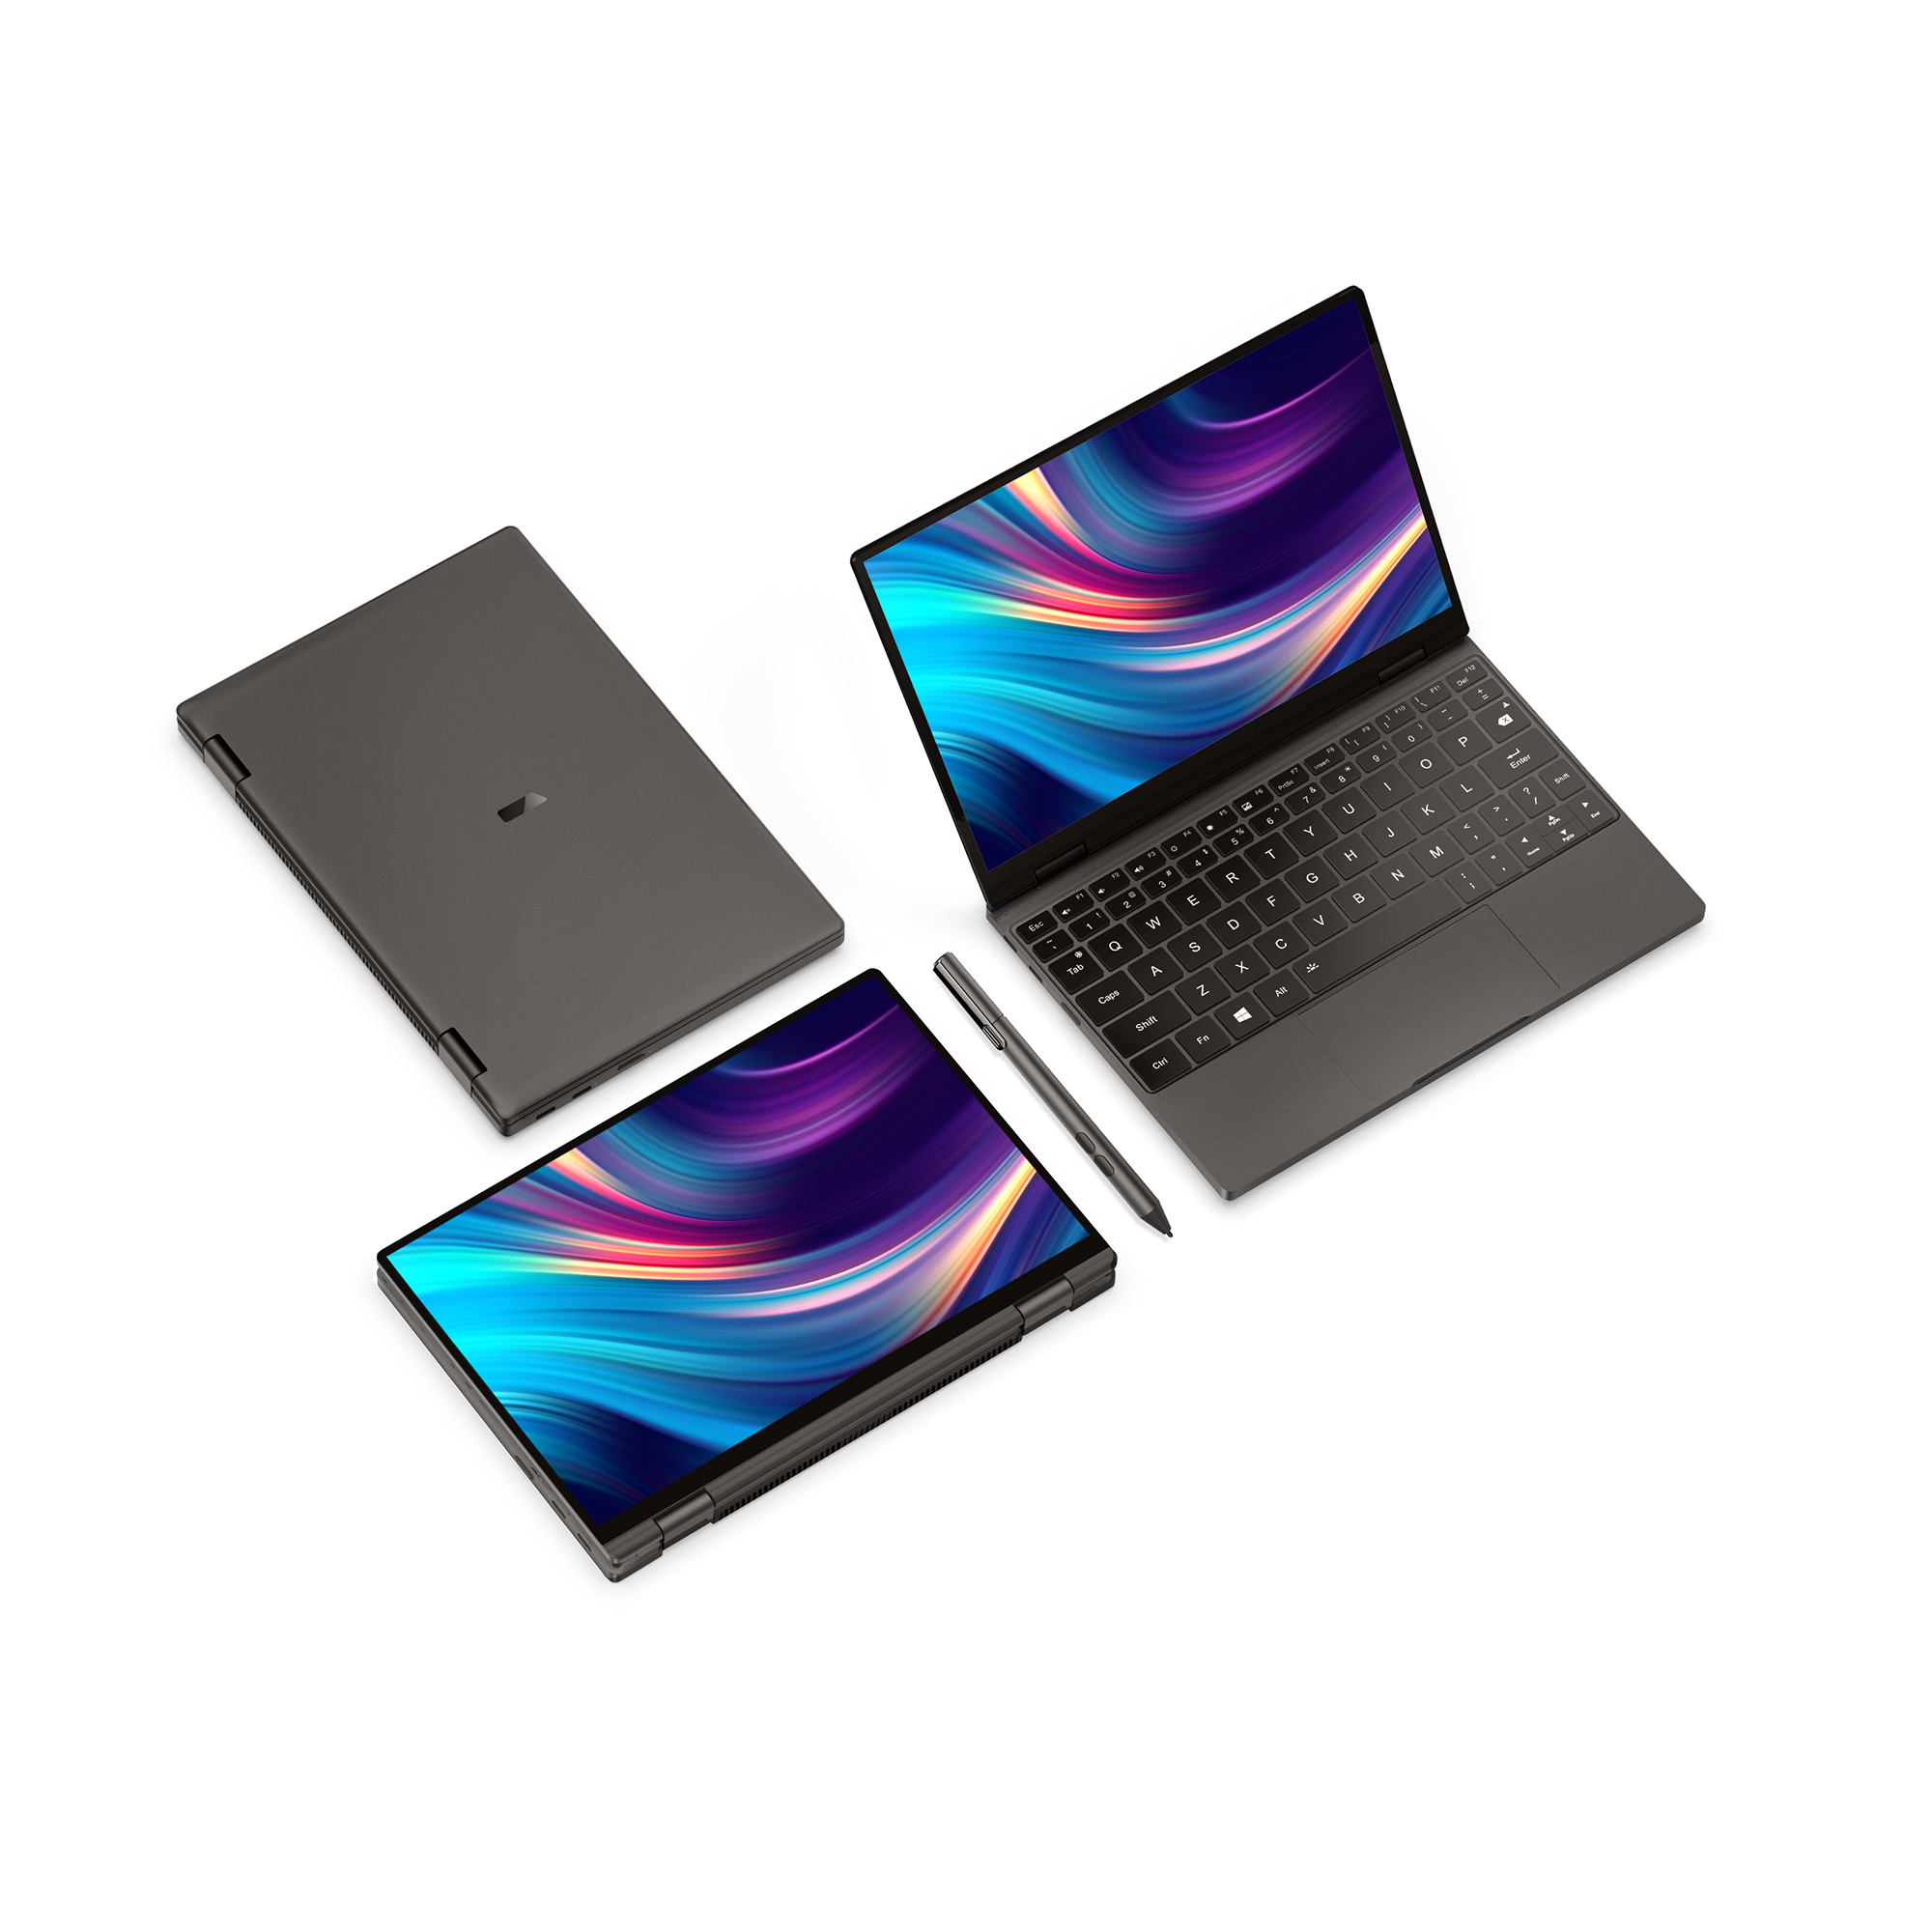 Un Cahier 10.1 Pouces Poche ordinateur portable OneMix4 Platine Netbook i7-1160G7 16G de RAM 1 to SSD IPS Écran TACTILE Windows 10